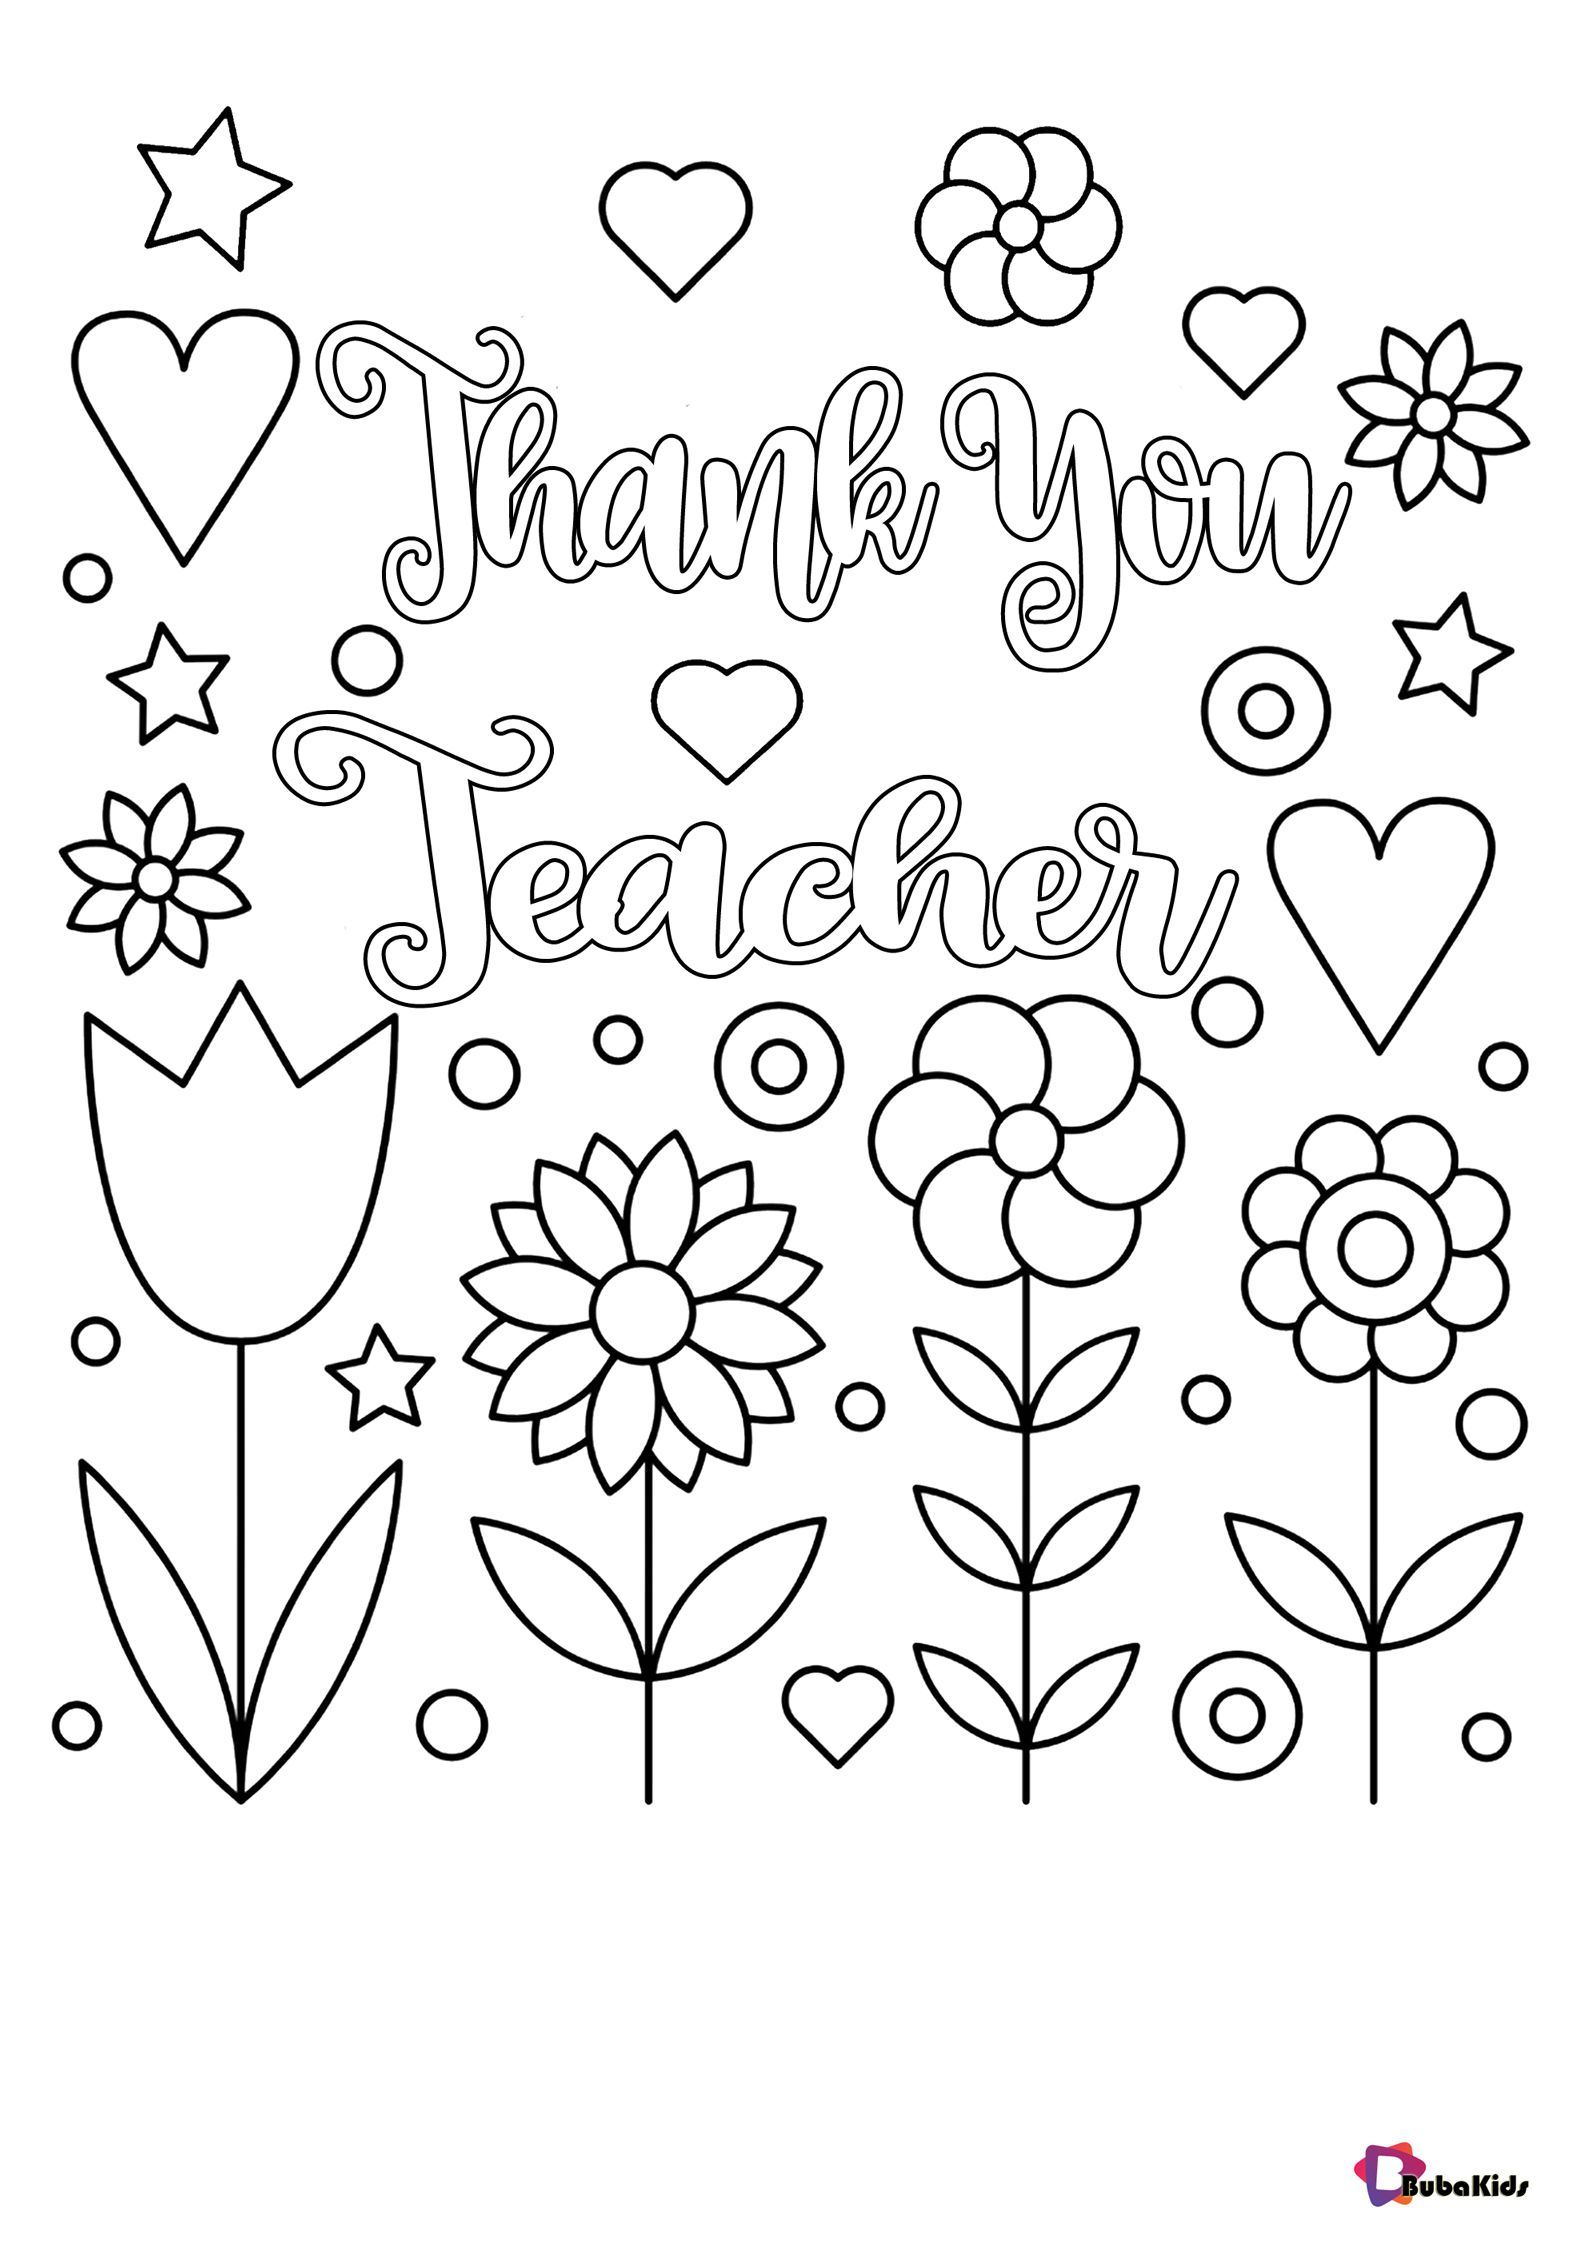 Teacher Appreciation Day Coloring Pages Thank You Teacher Collection Of Cartoon Col Mothers Day Coloring Sheets Mothers Day Coloring Pages Mother S Day Colors